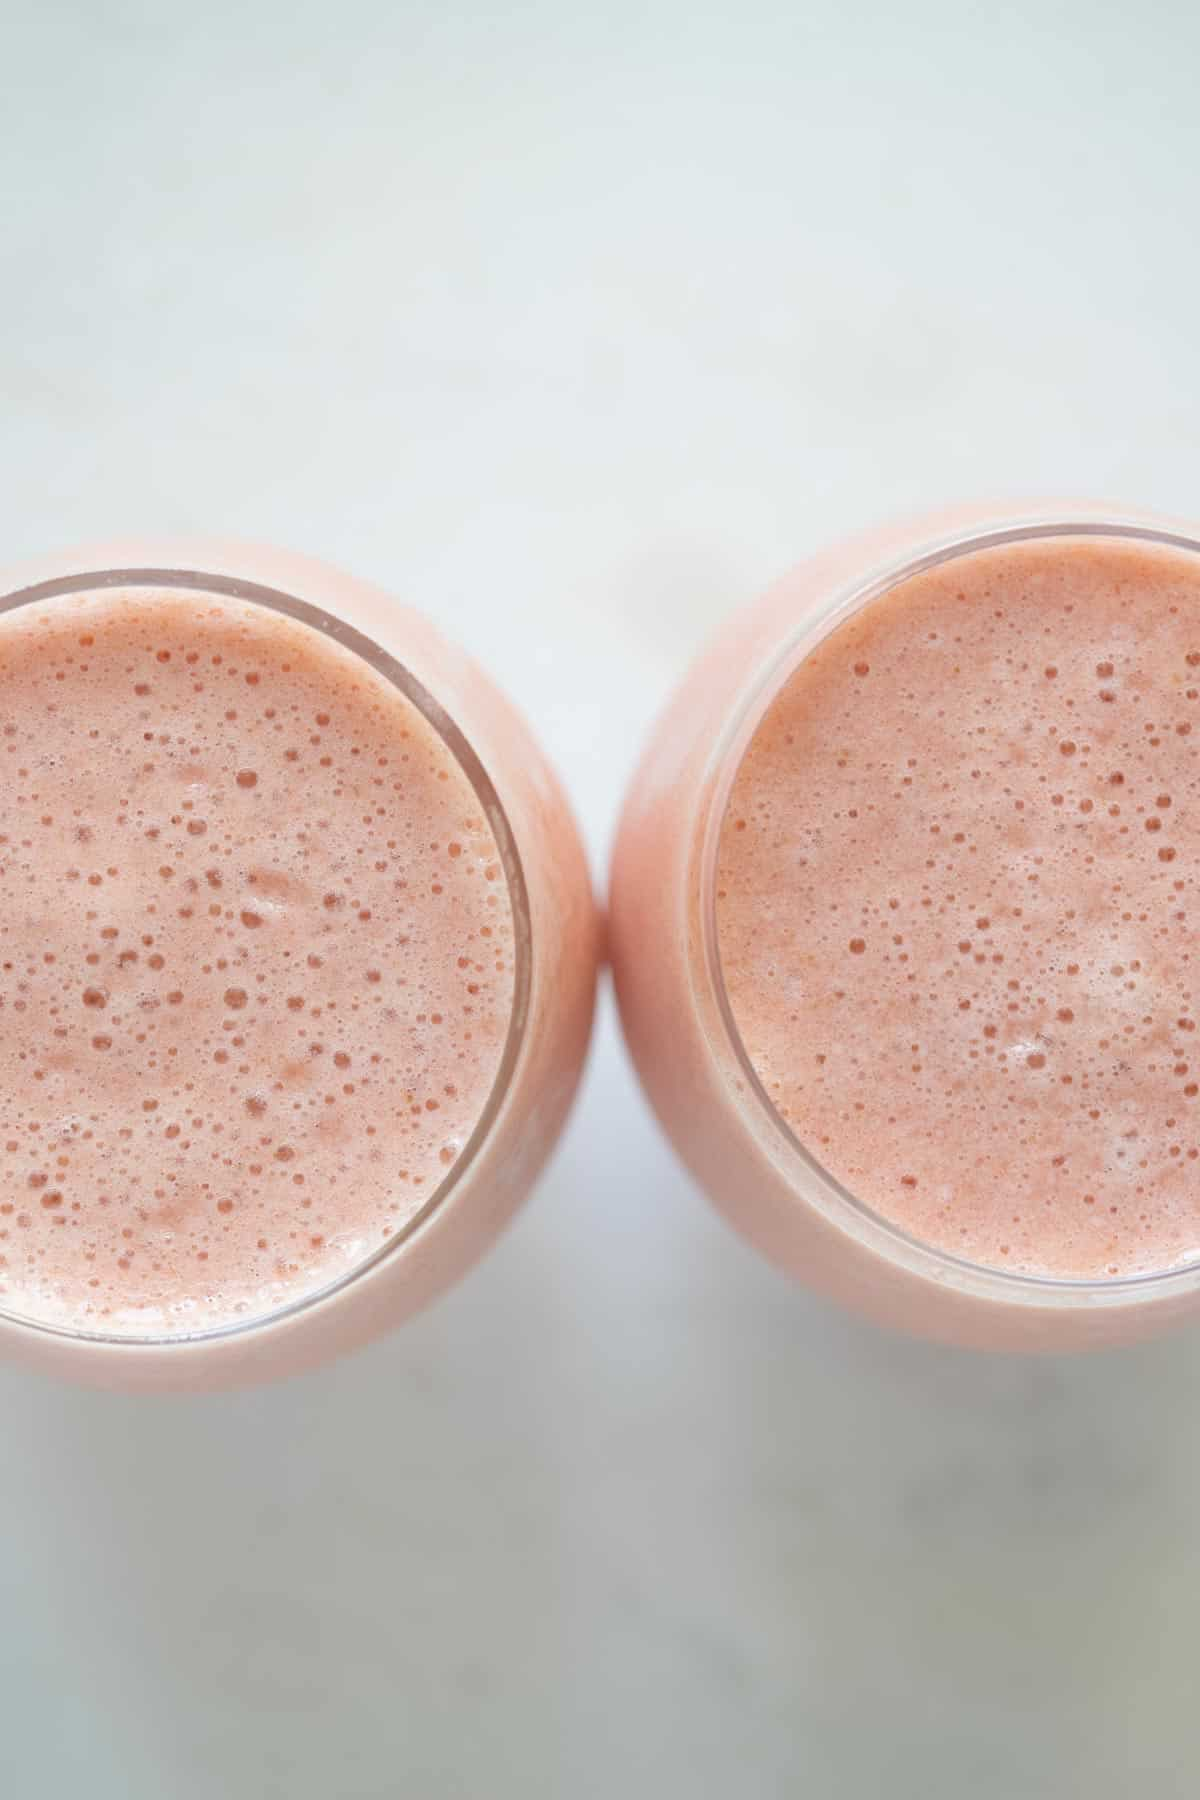 smoothie in 2 glass cups side by side